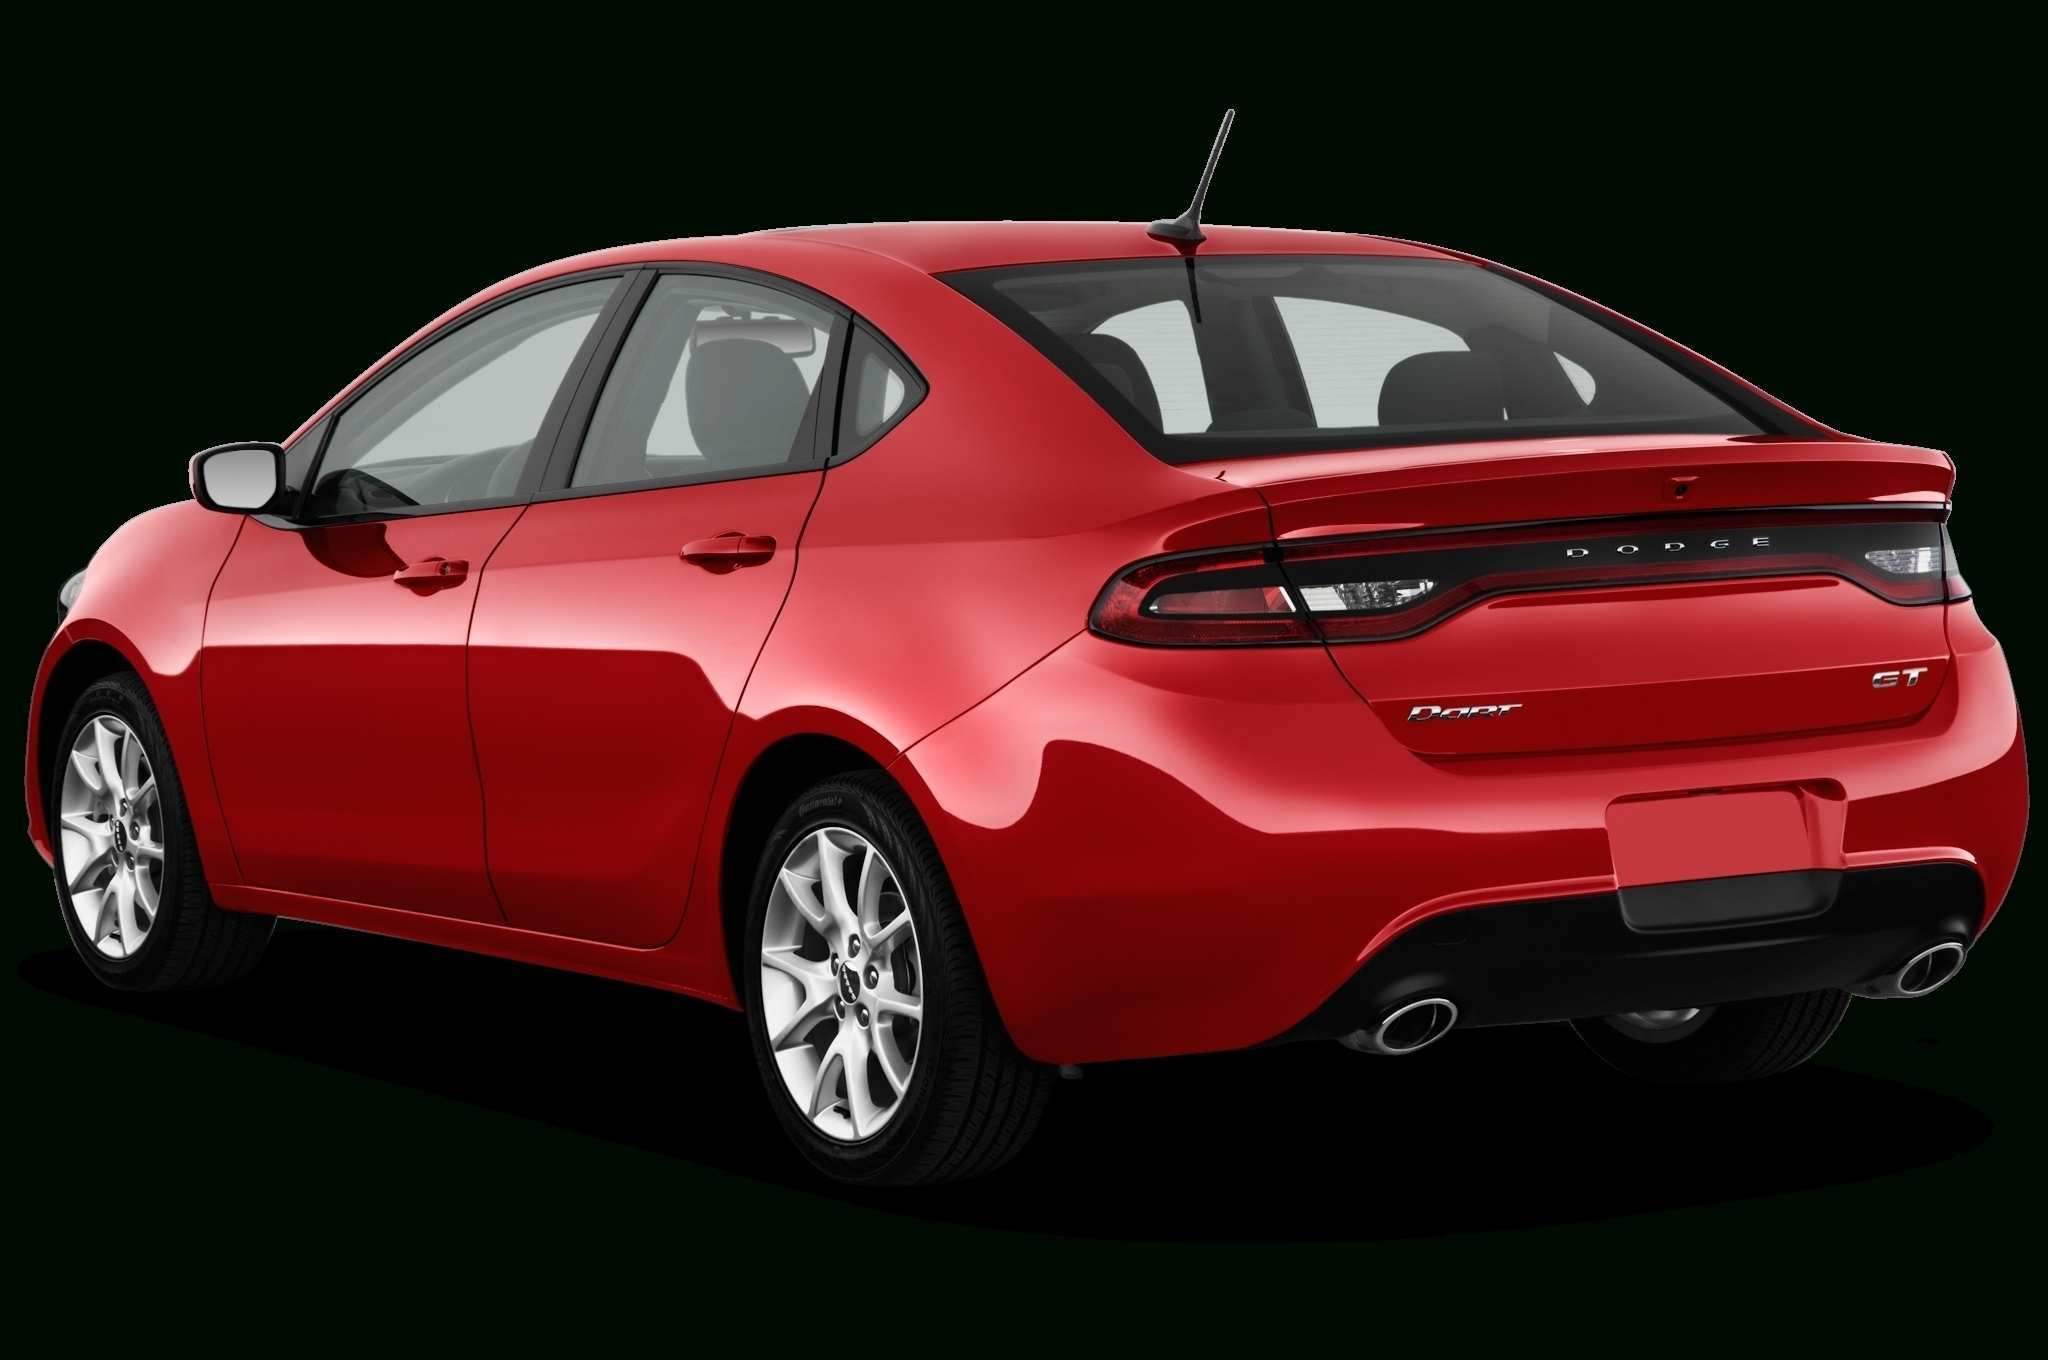 56 Concept of The Dodge 2019 Dart Review And Release Date Ratings with The Dodge 2019 Dart Review And Release Date